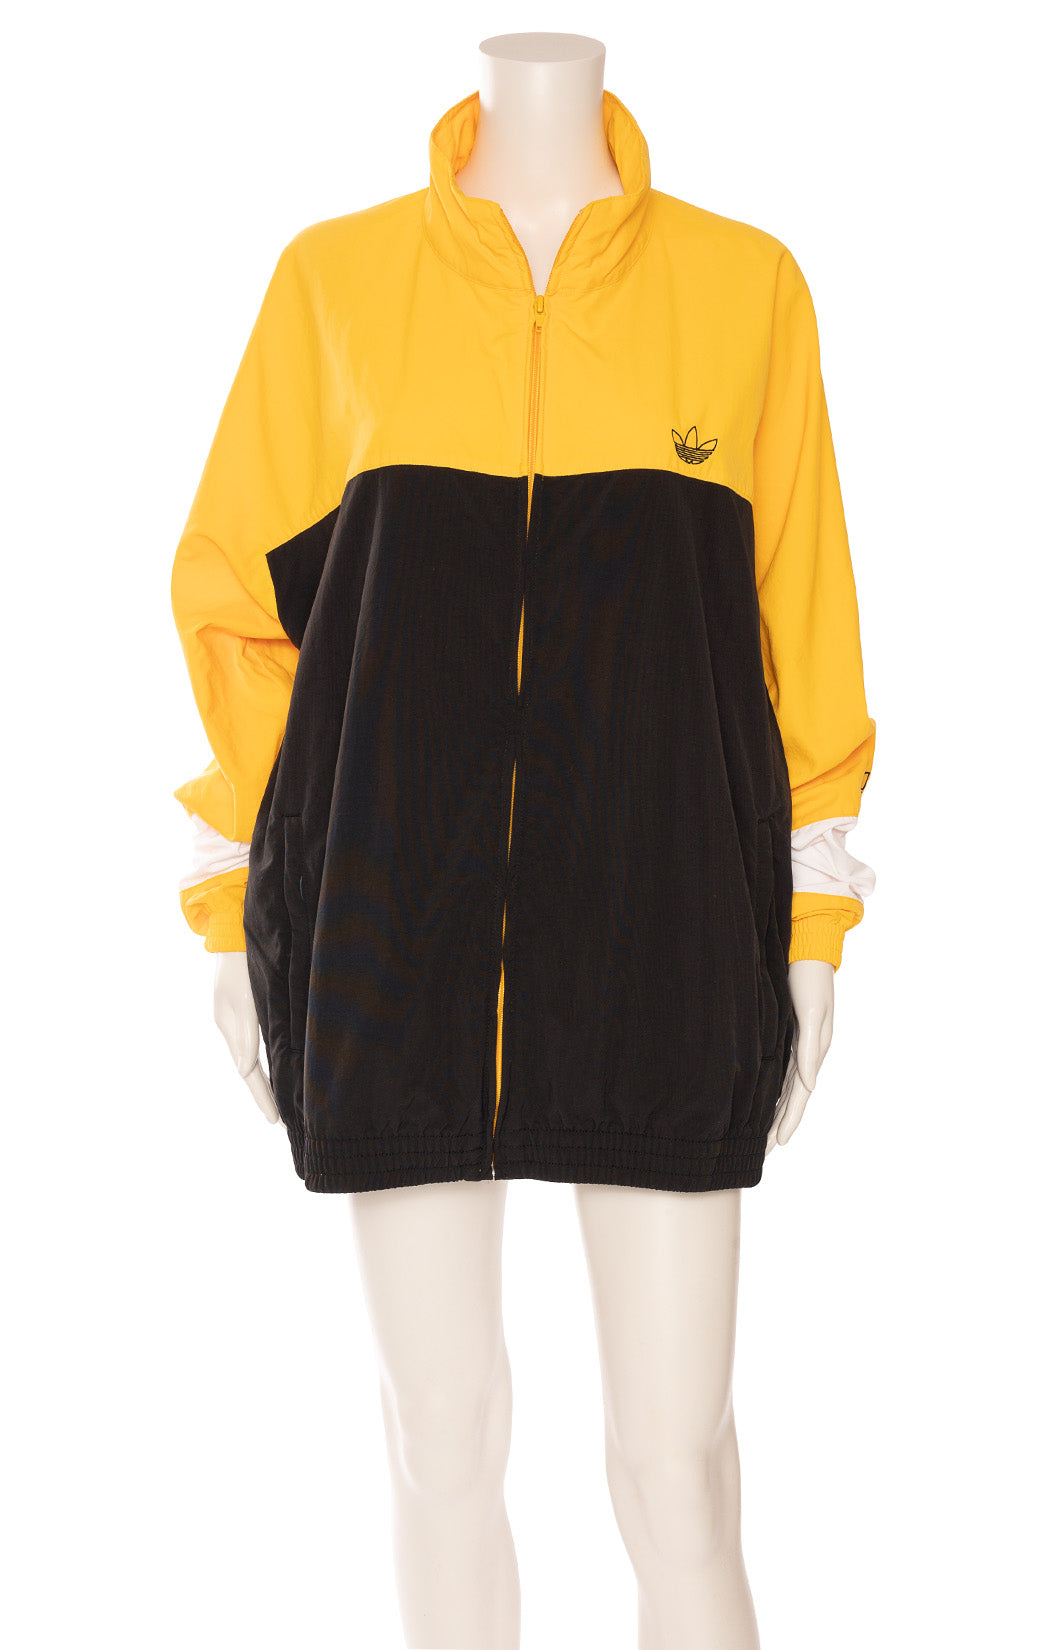 Yellow black and white zipper front jacket with zipper front pockets